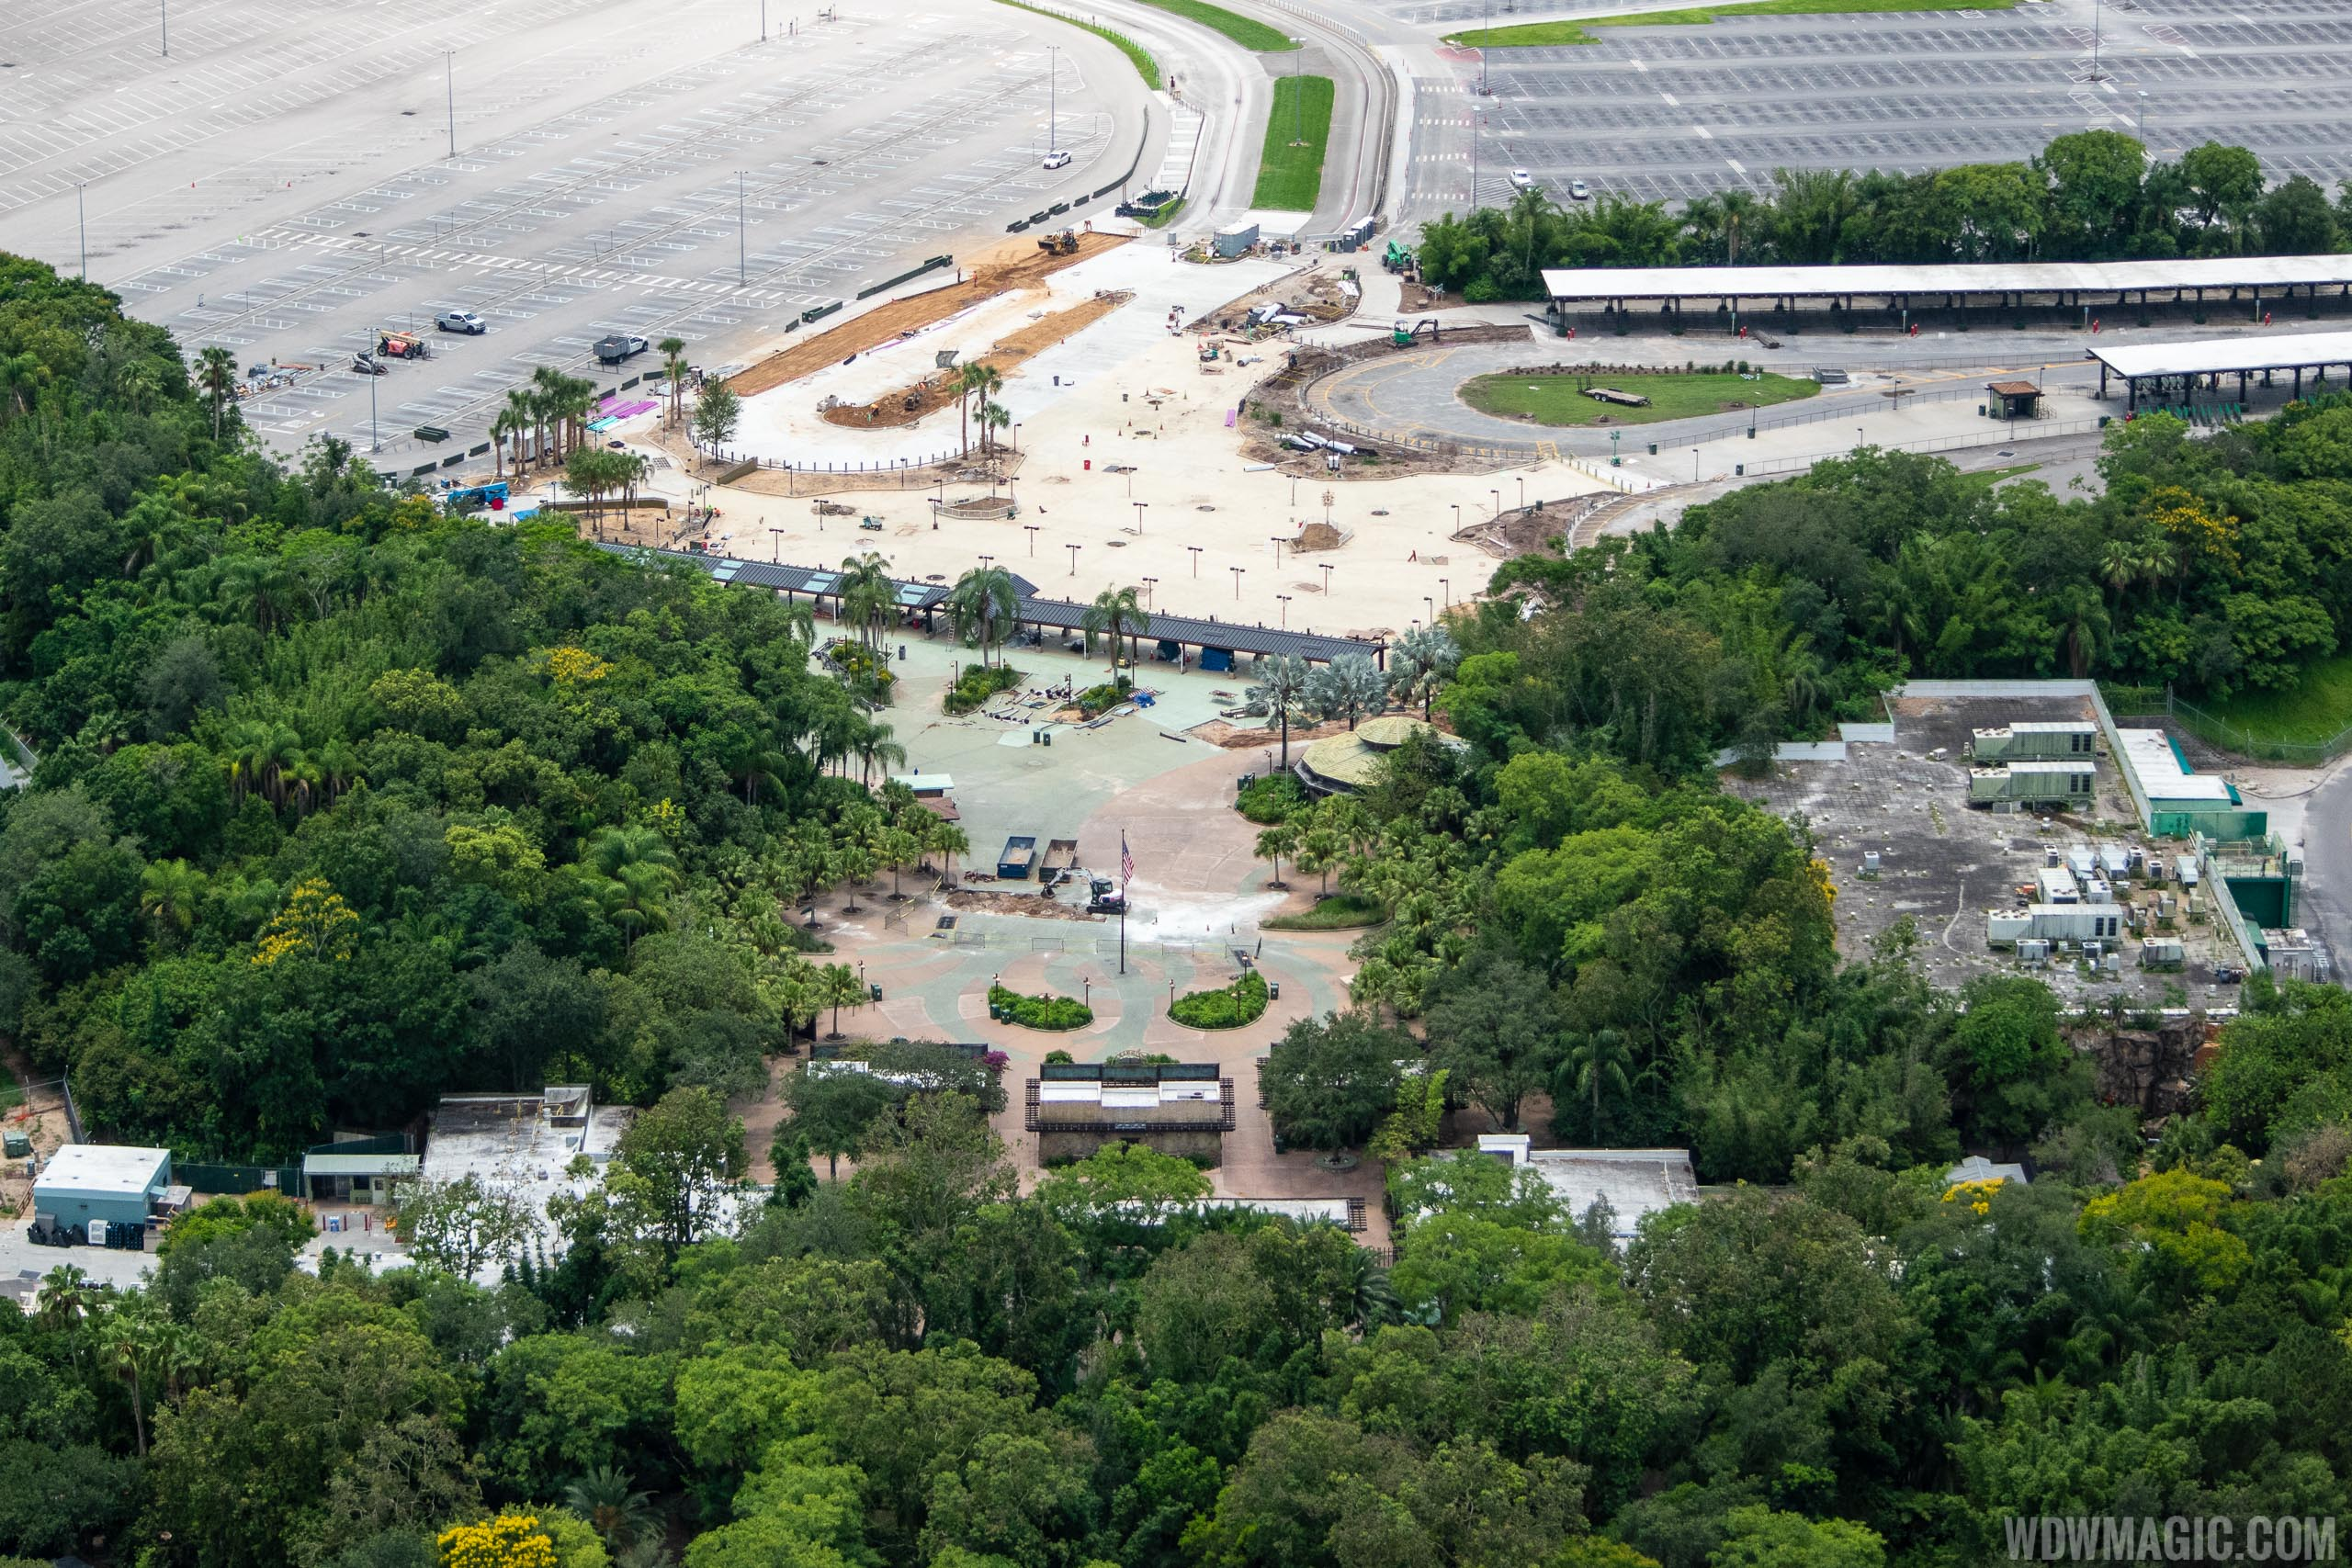 Disney's Animal Kingdom main entrance construction - June 2020